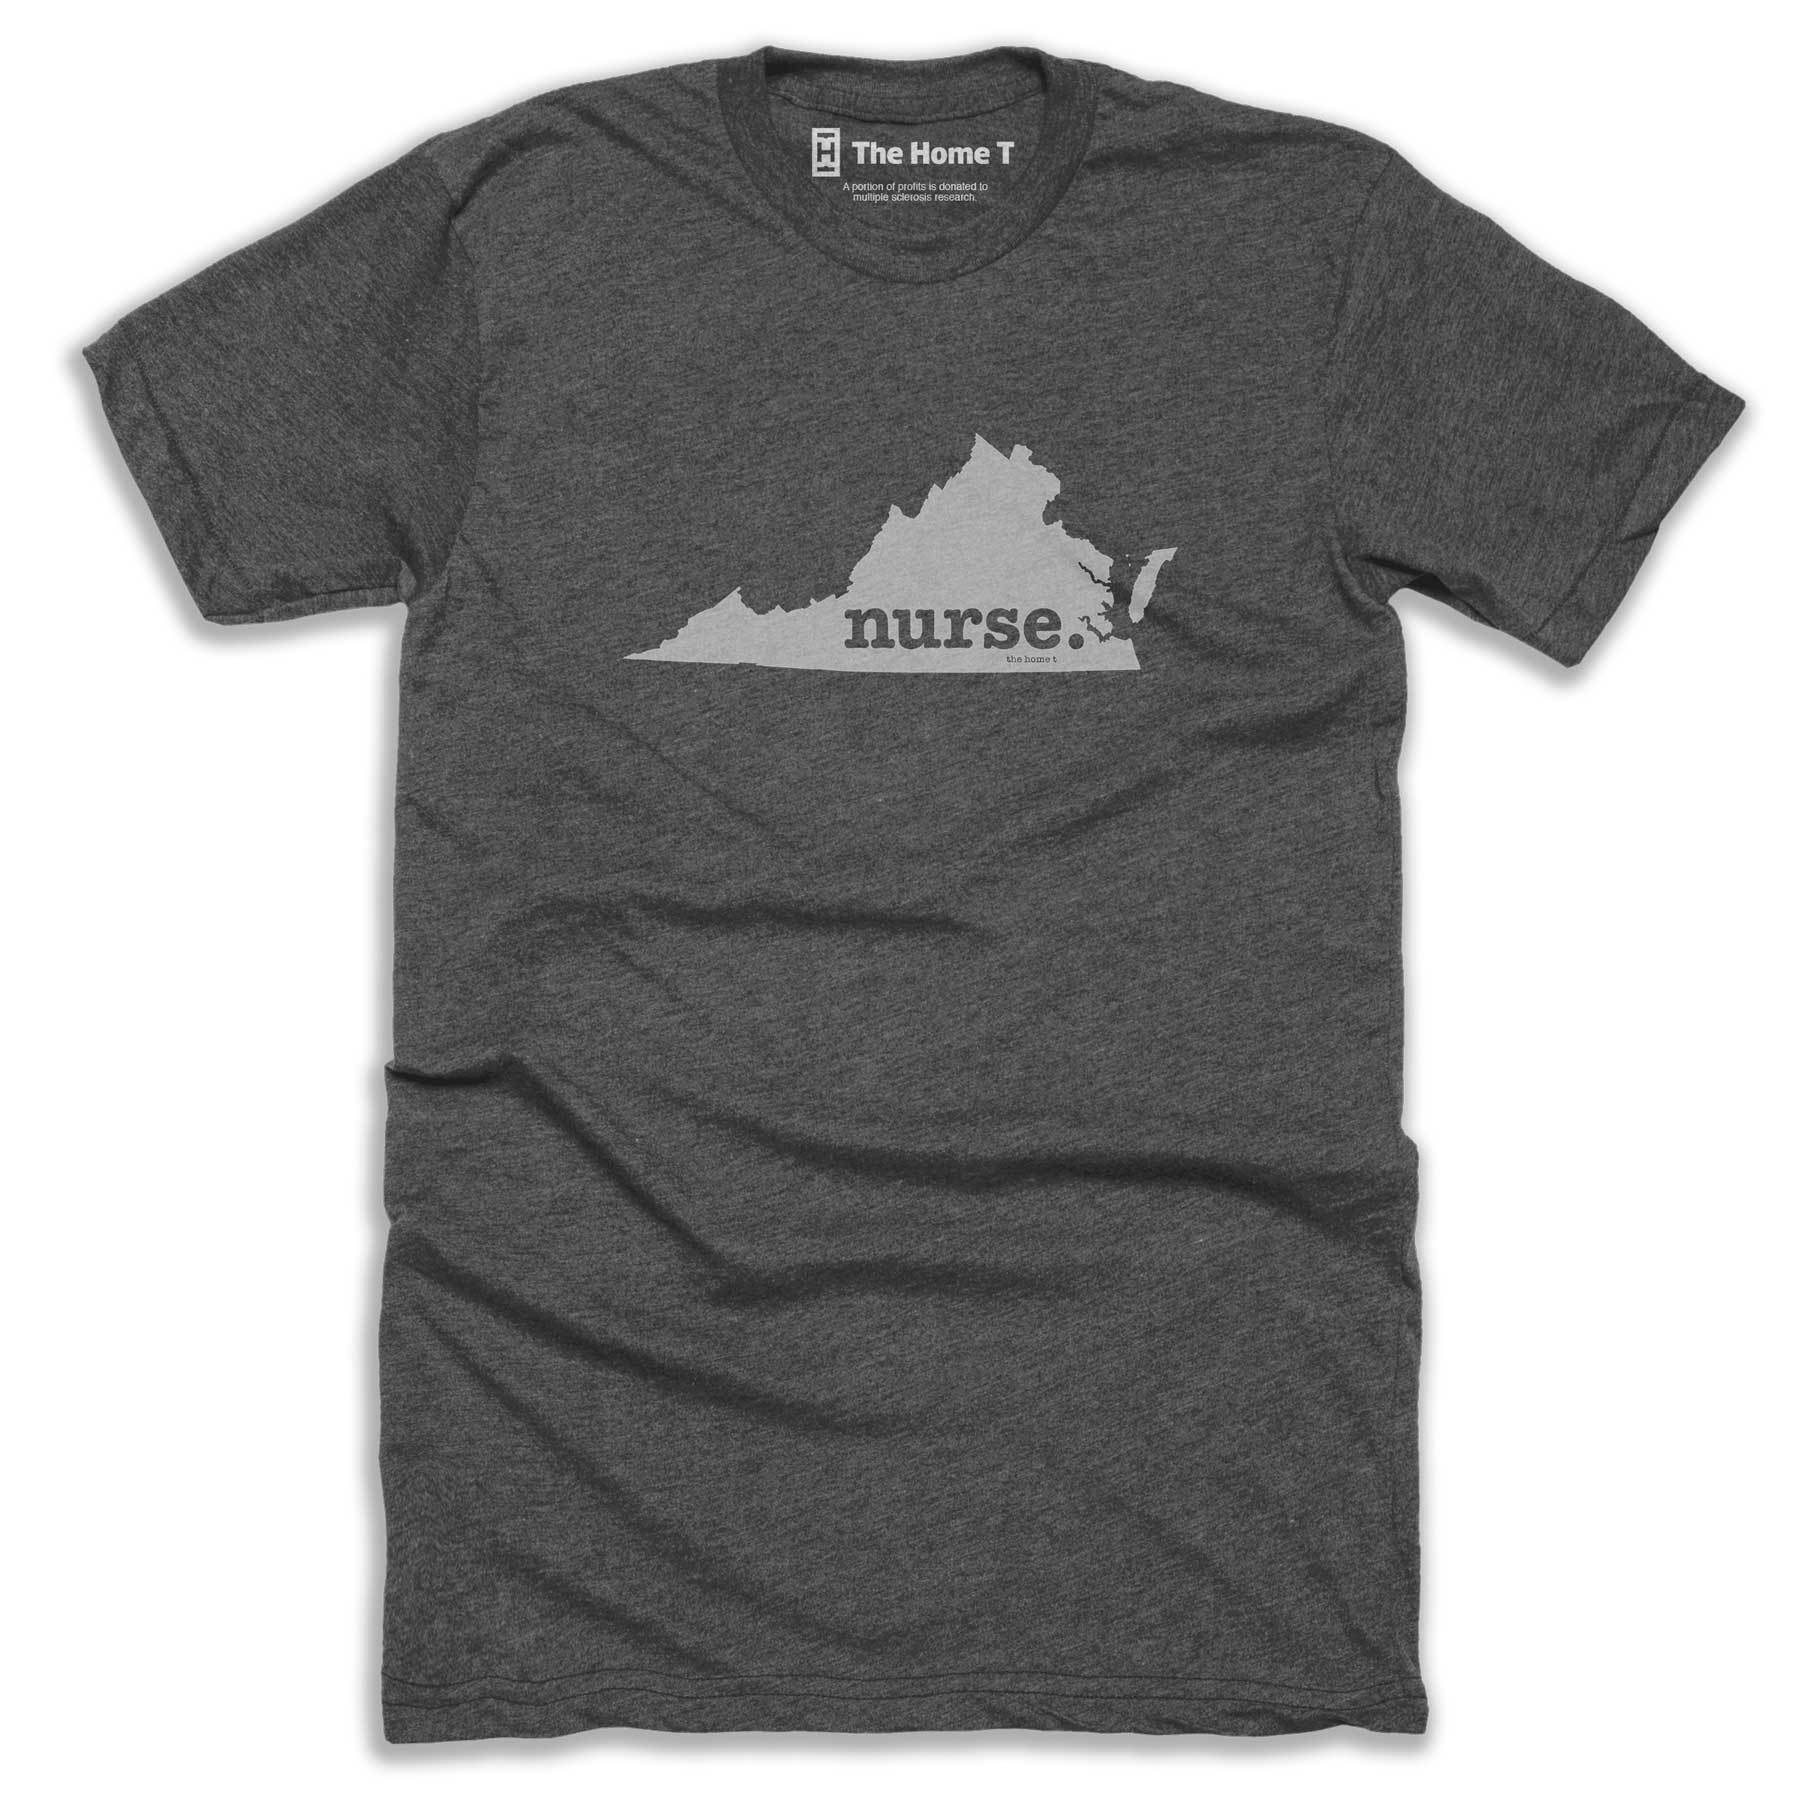 Virginia Nurse Home T-Shirt